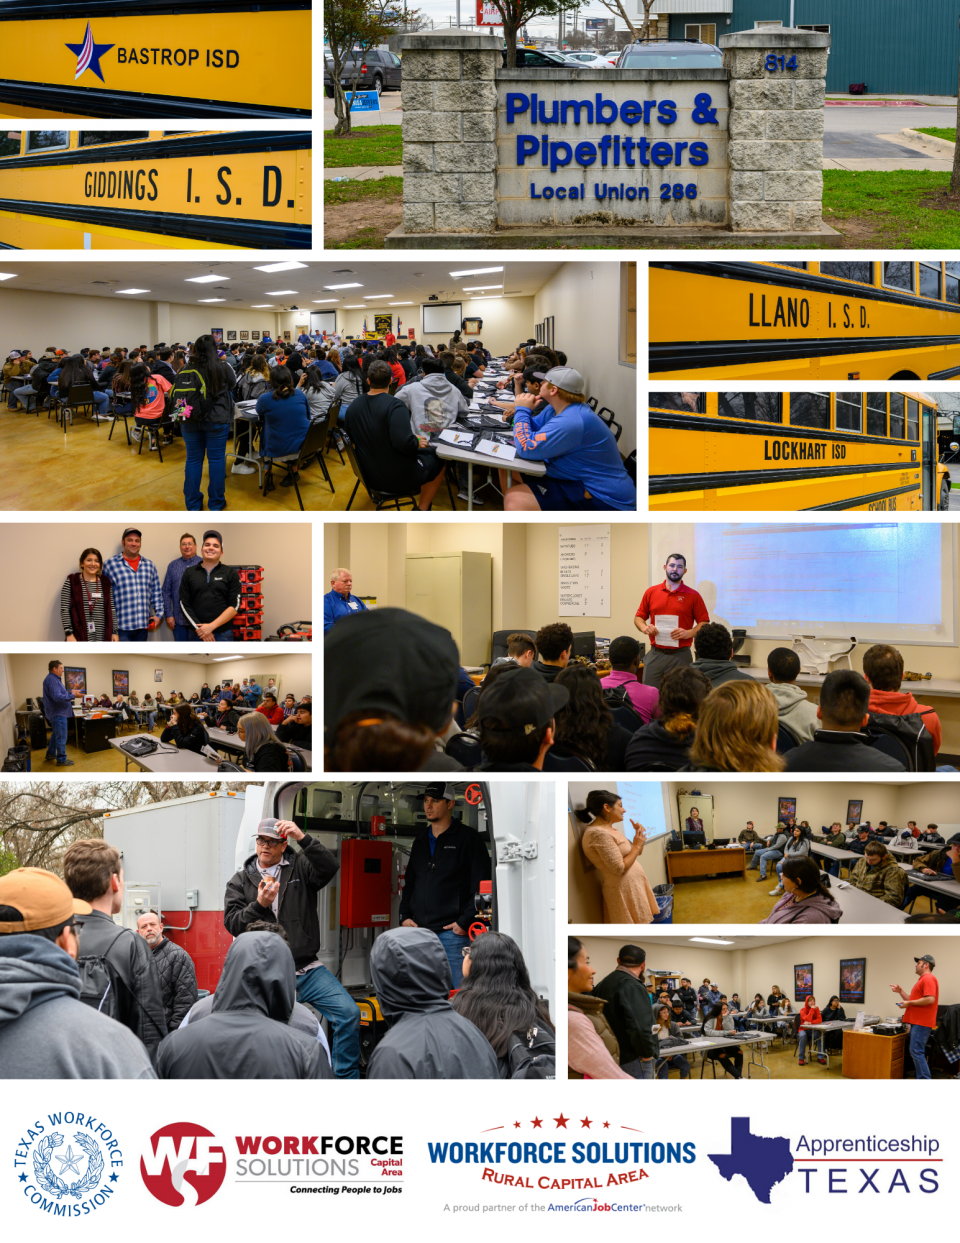 WSRCA Hosts Building Trades Apprenticeship Showcase to Connect Students to Skilled Trade Careers